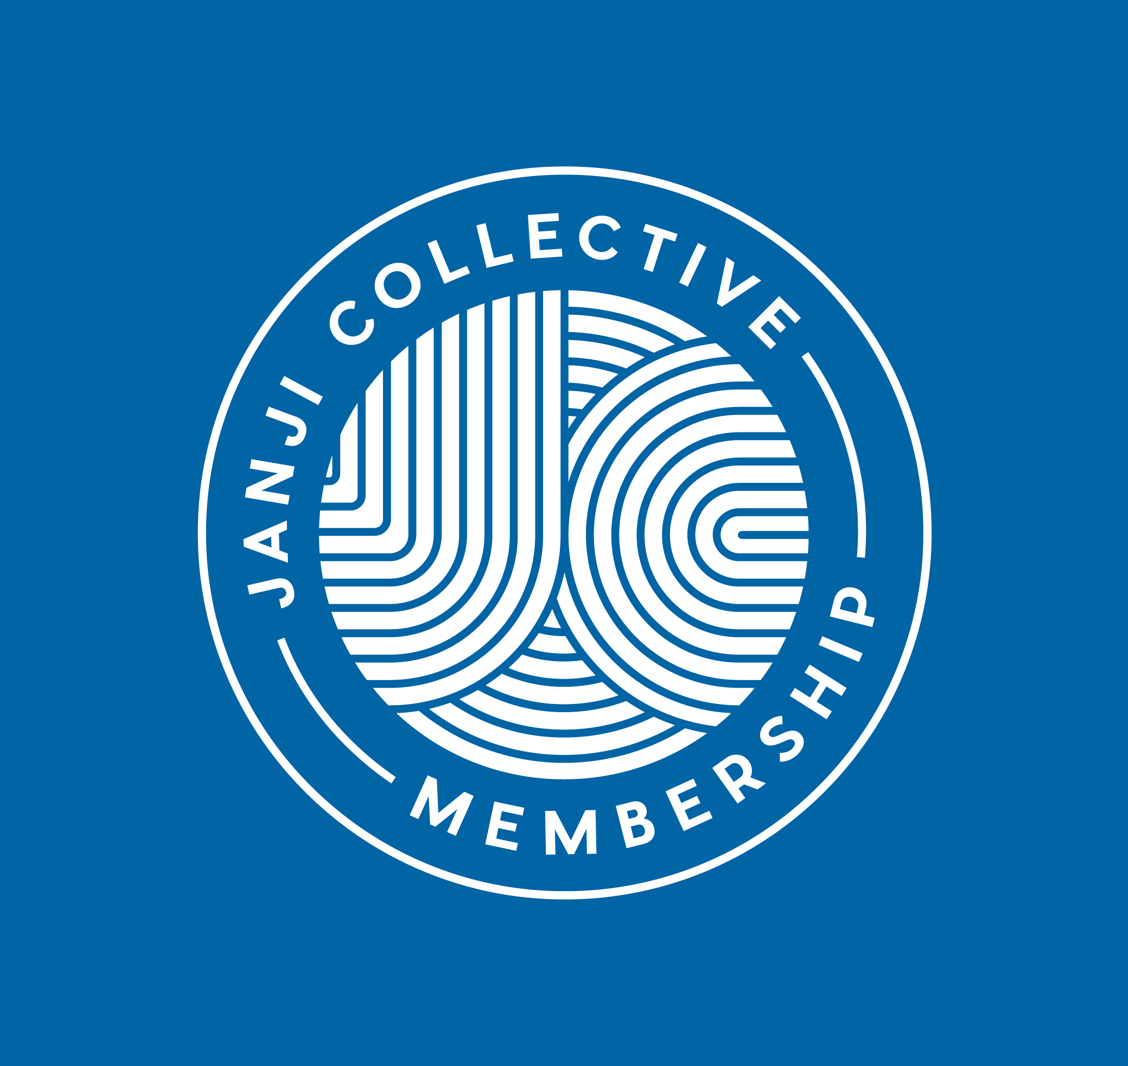 Janji Collective Gift Membership